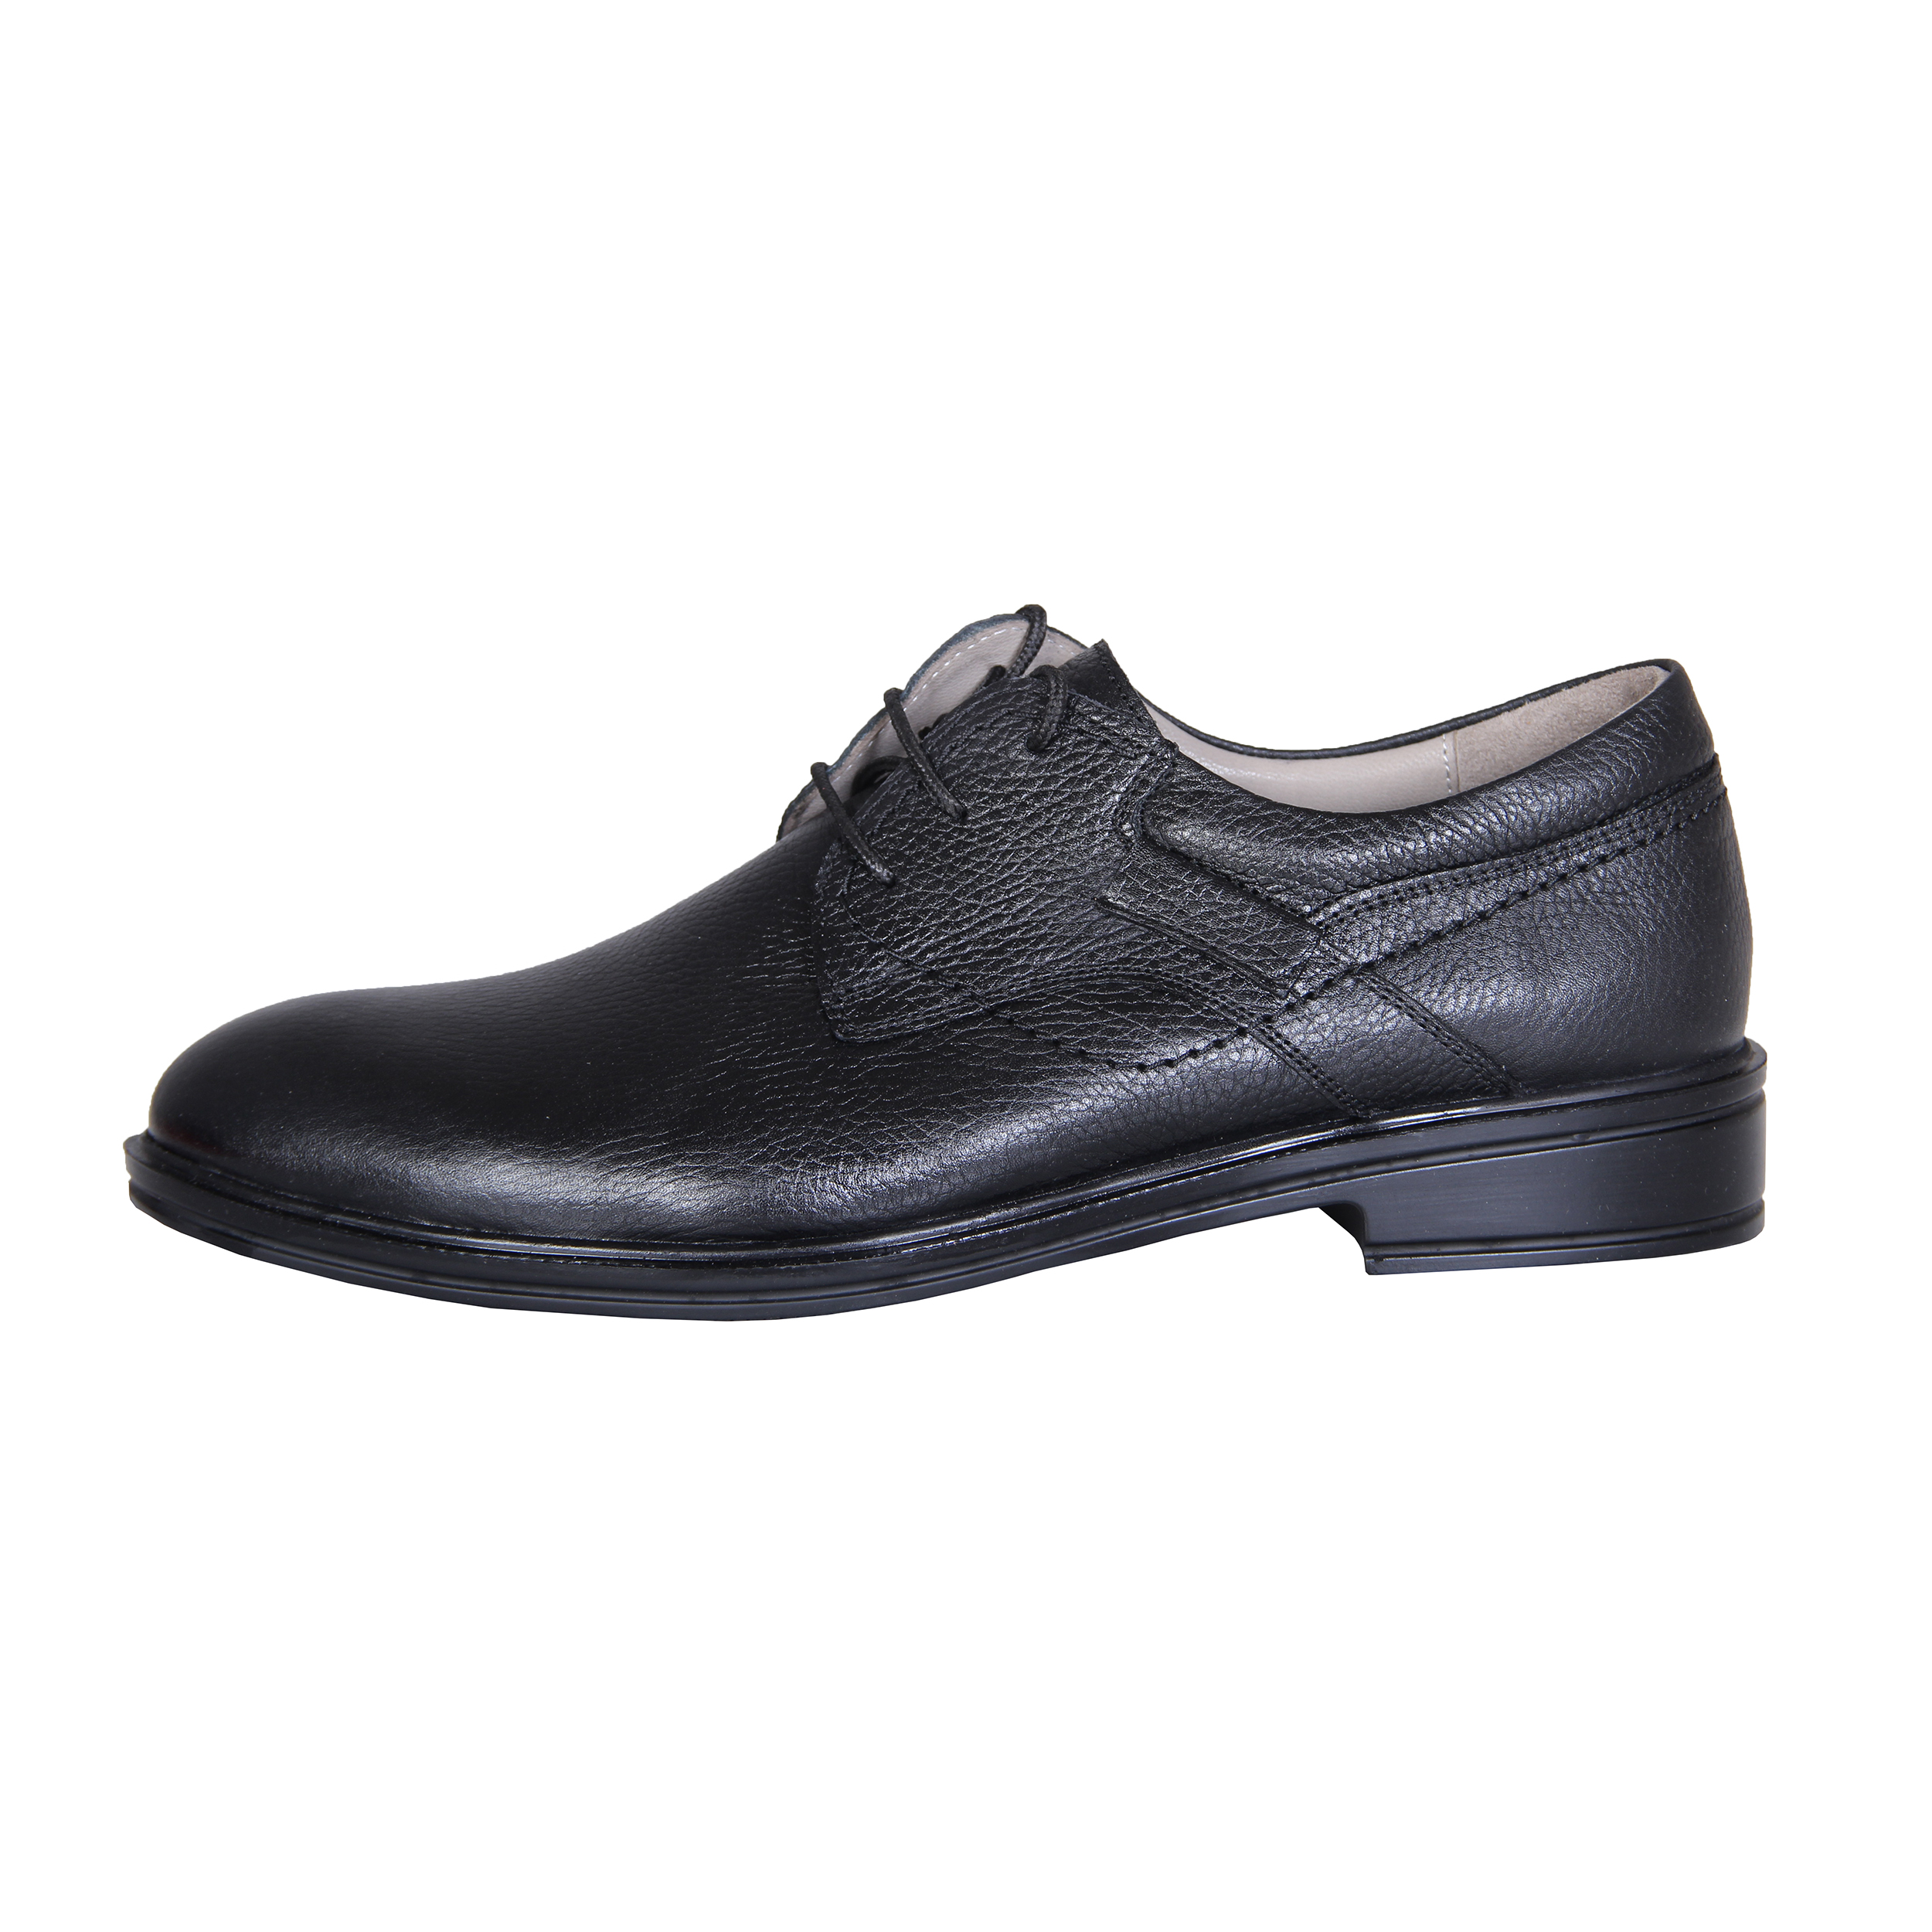 SHAHRECHARM leather men's shoes , F6028-1 Model